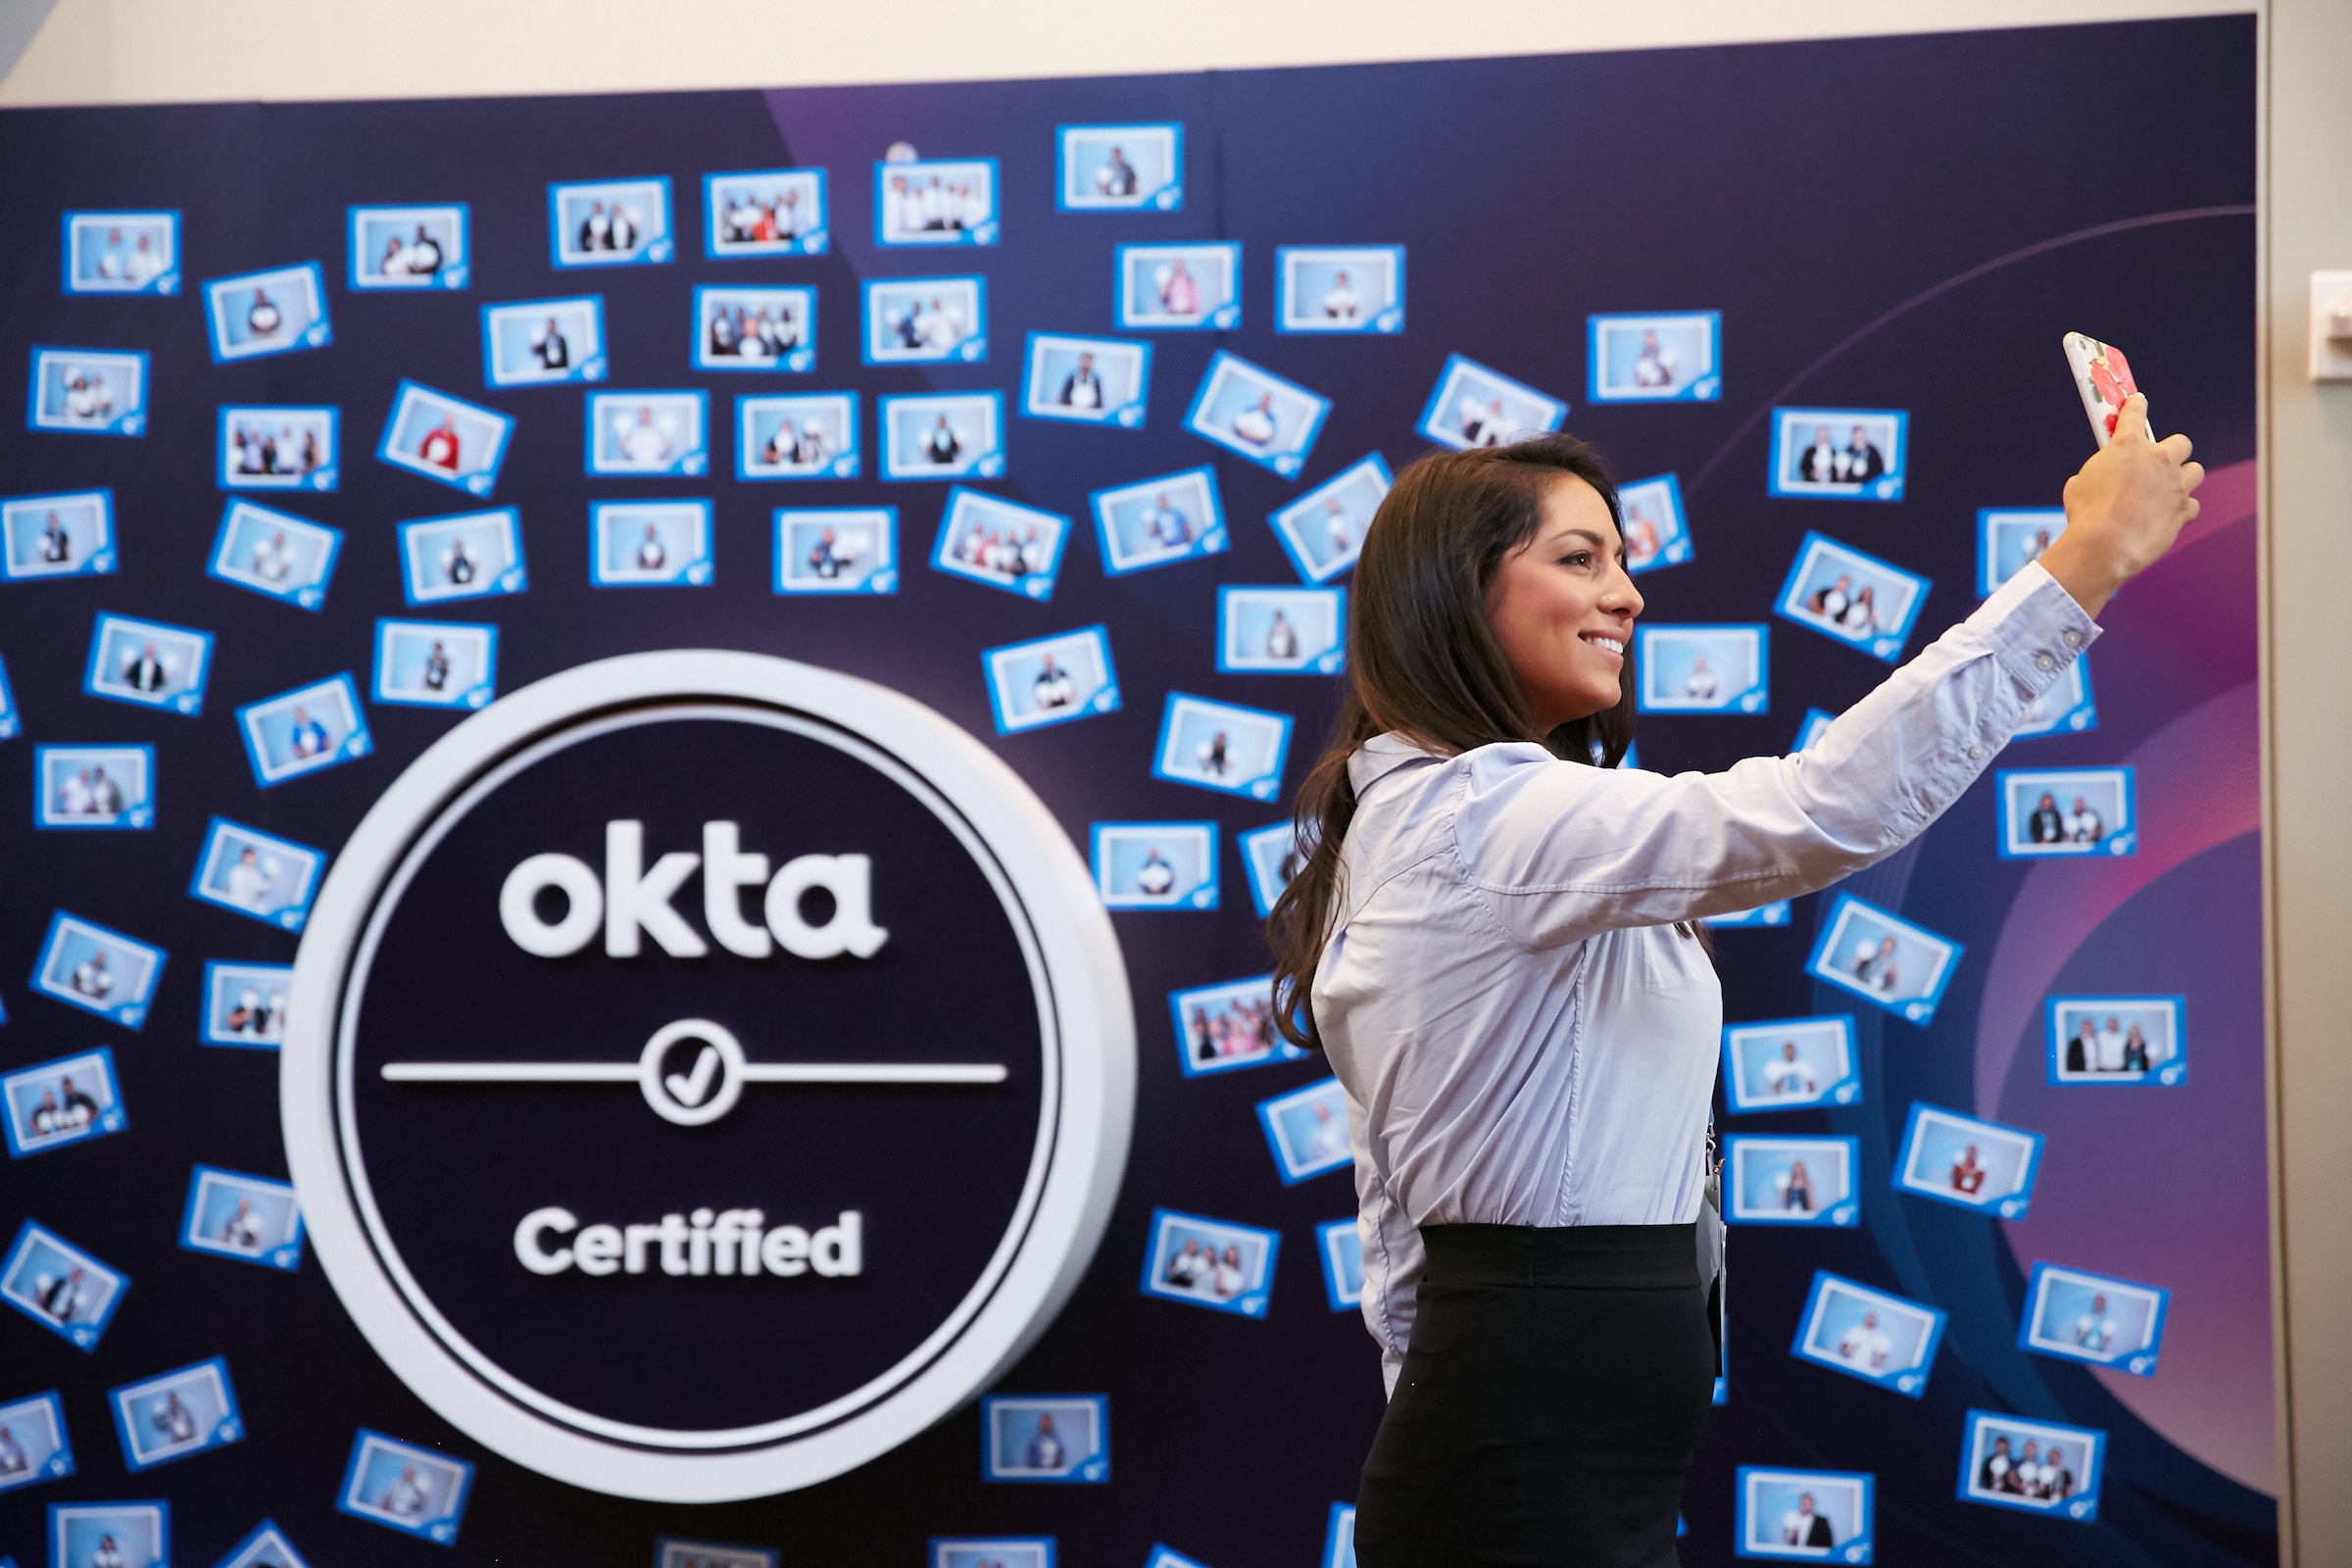 Okta Certifications in the Top Tier of Highest Paying IT ...